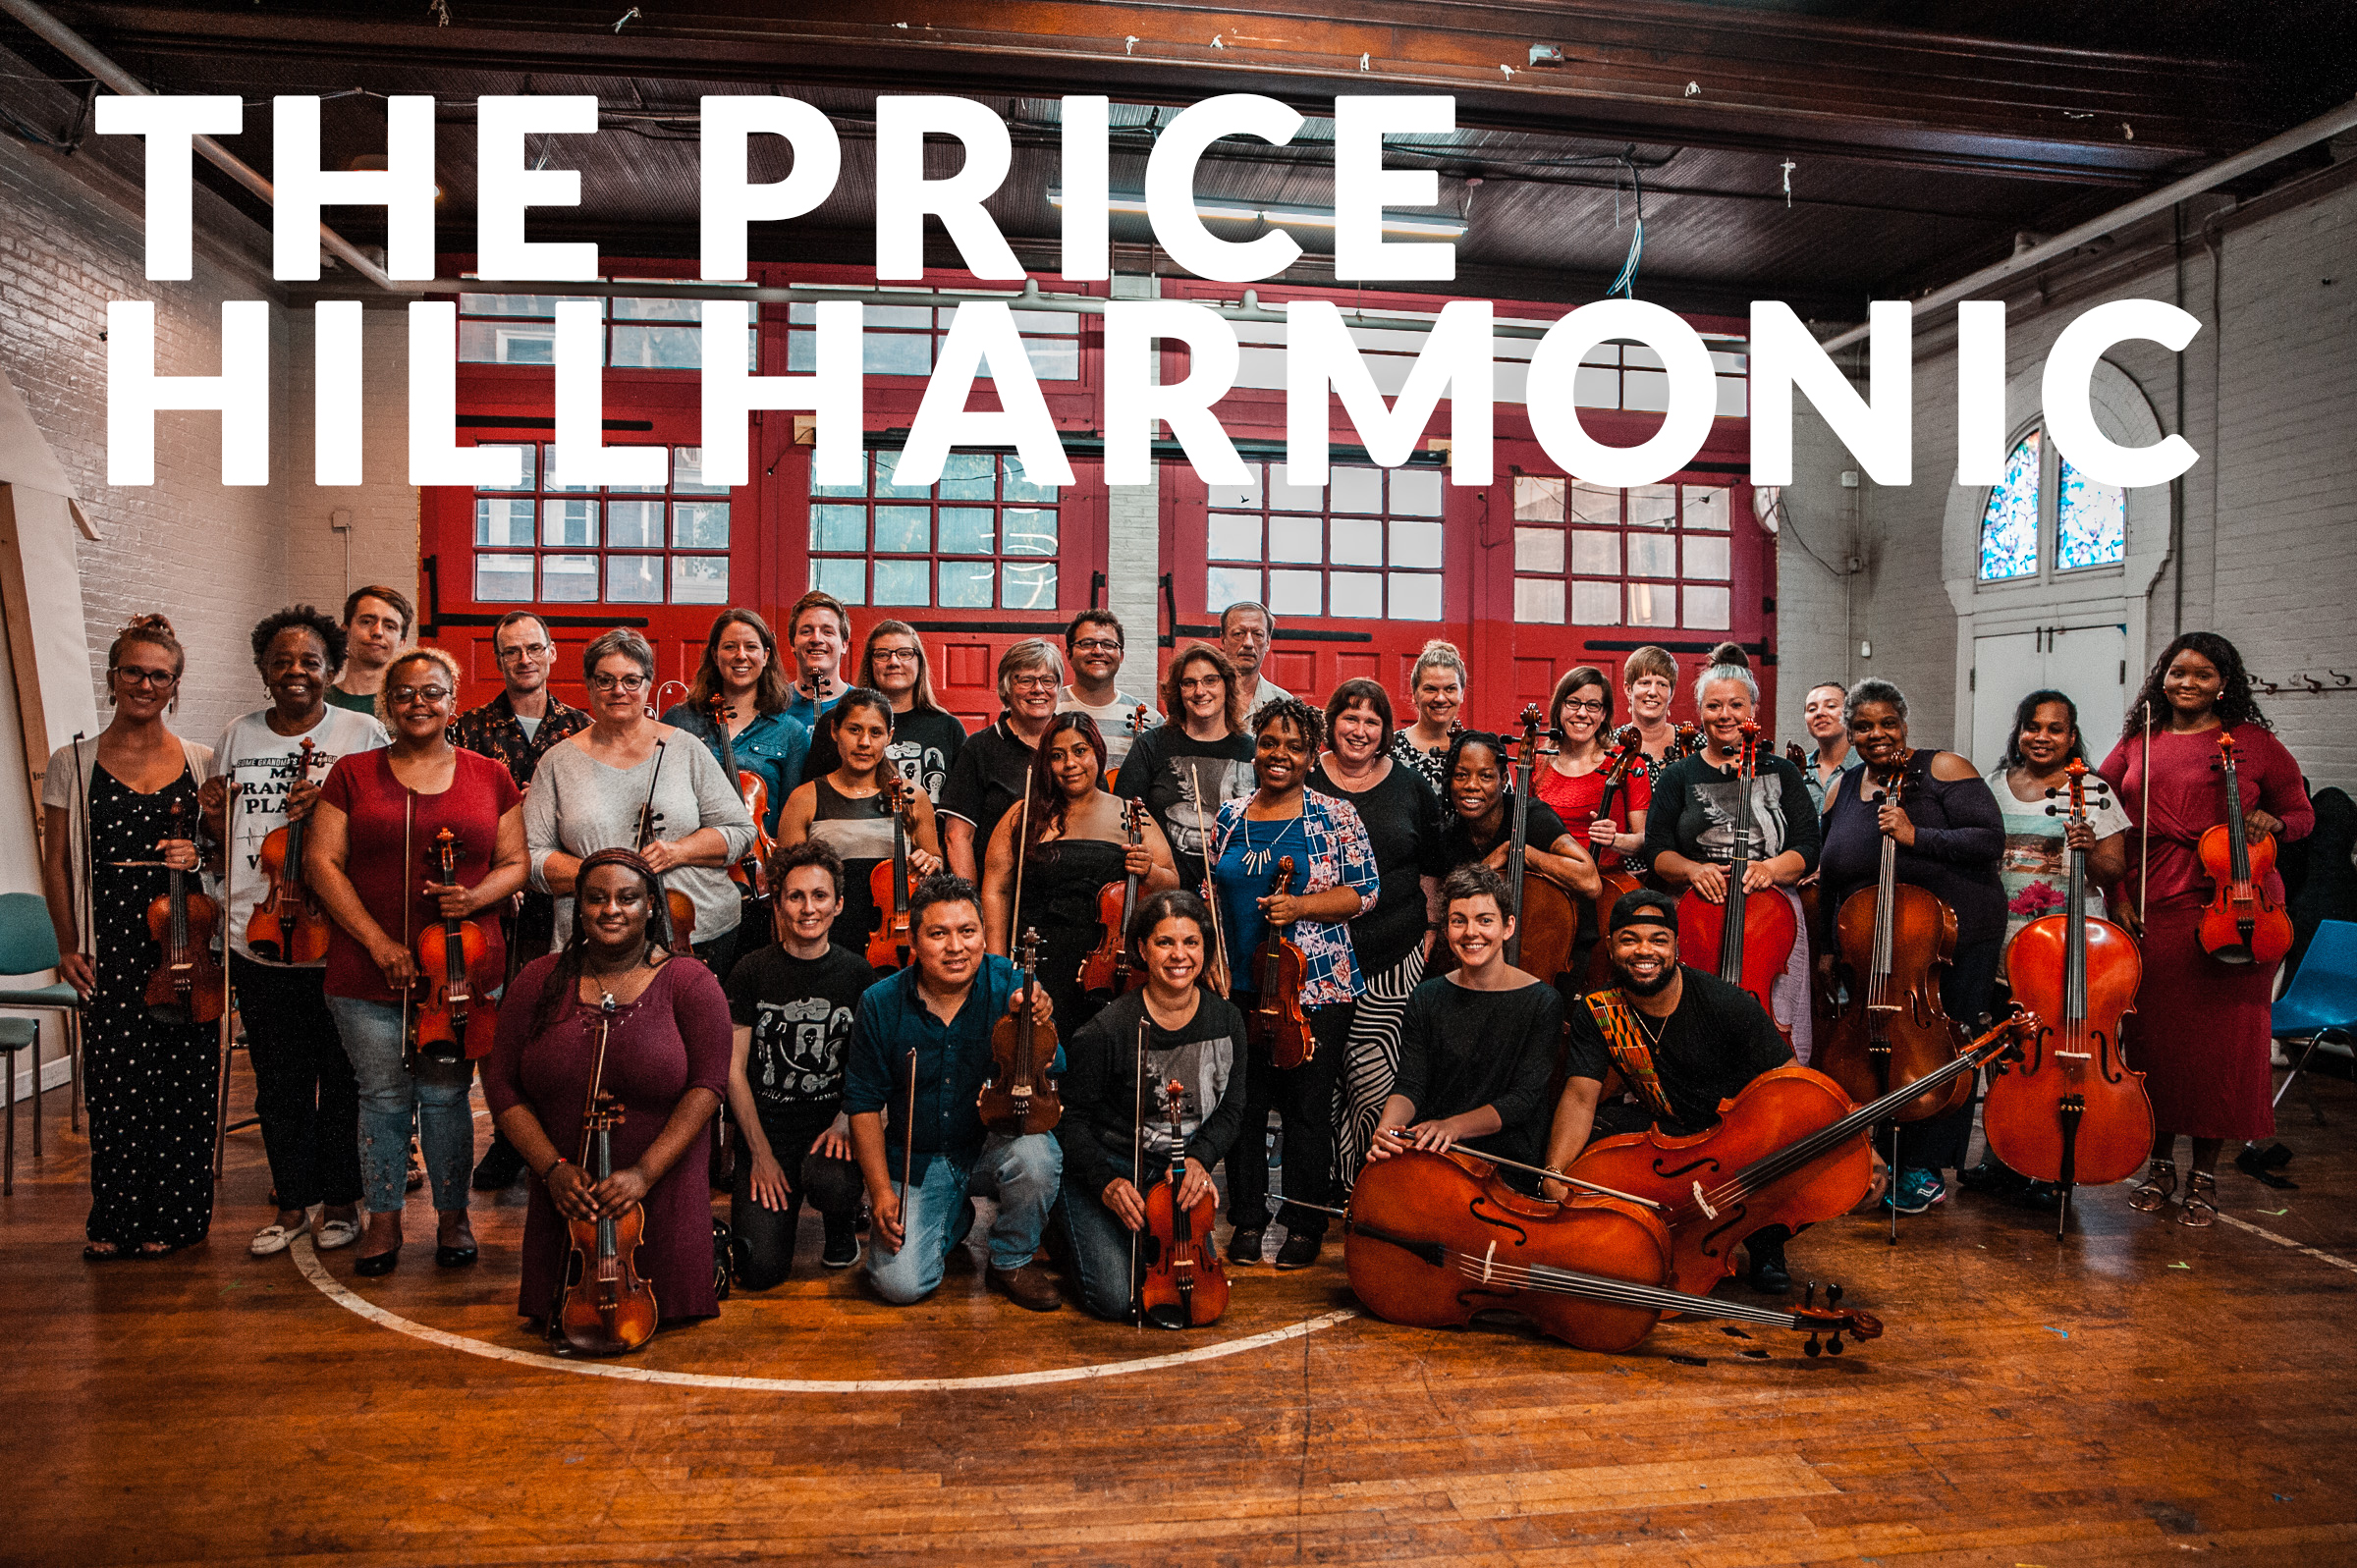 Price Hillharmonic TEXT.jpg